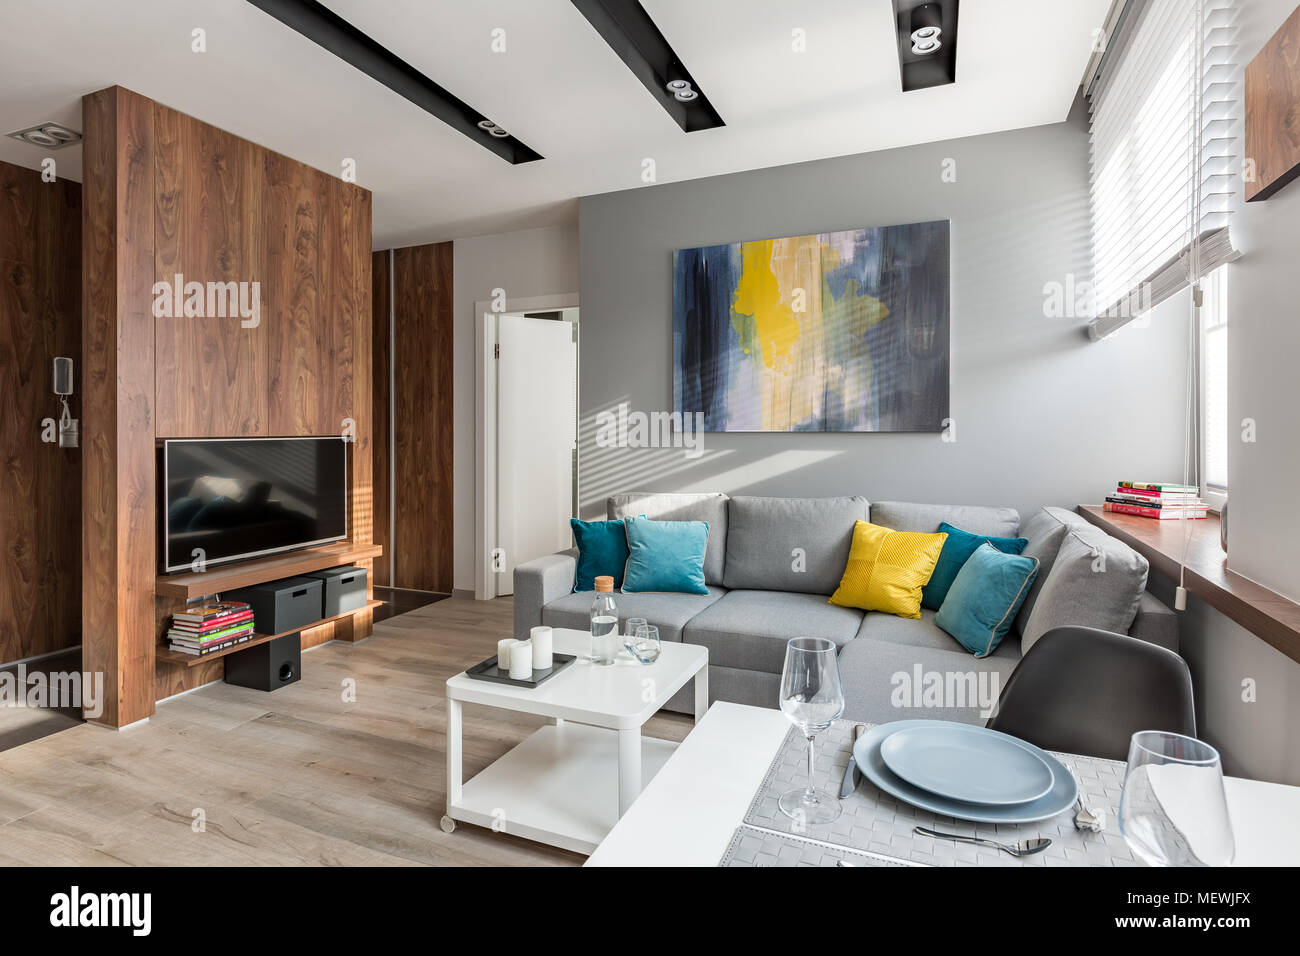 Tv Living Room With Wooden Wall Sofa And Dining Table Stock Photo Alamy